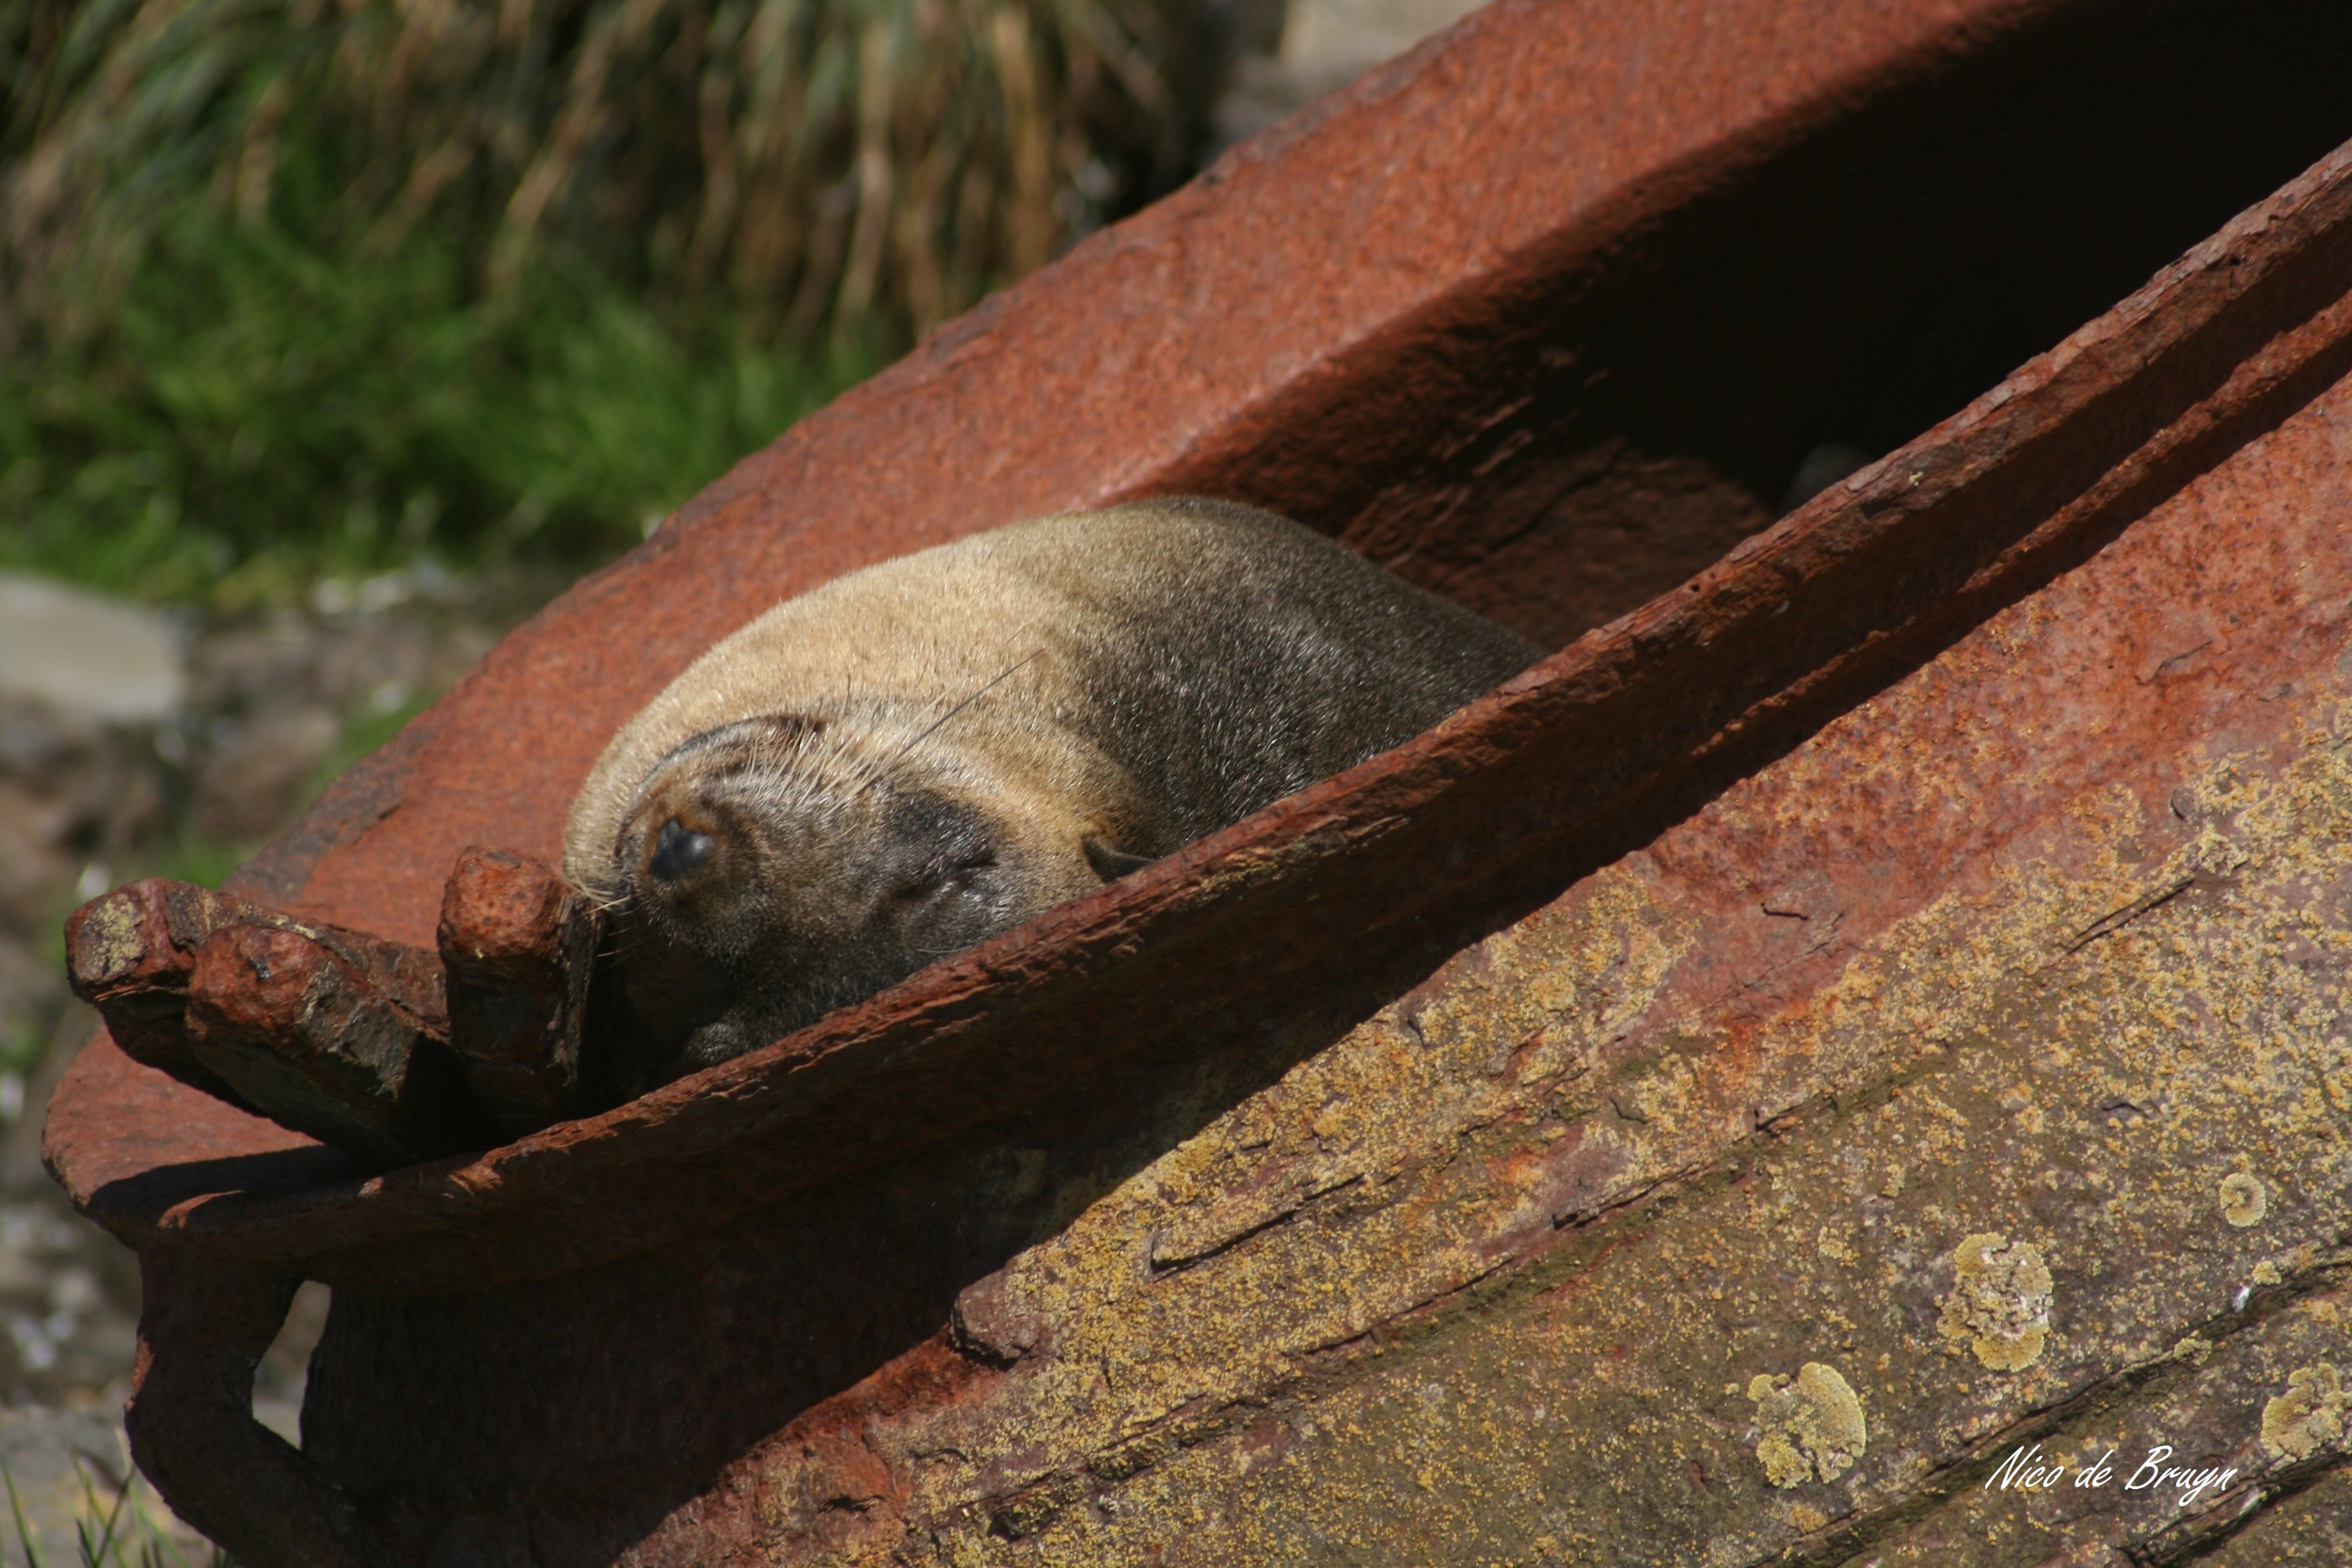 """Fortunately for all seals, the days of seal harvesting by """" Sealers of old """" are over. Photo: Nico de Bruyn"""